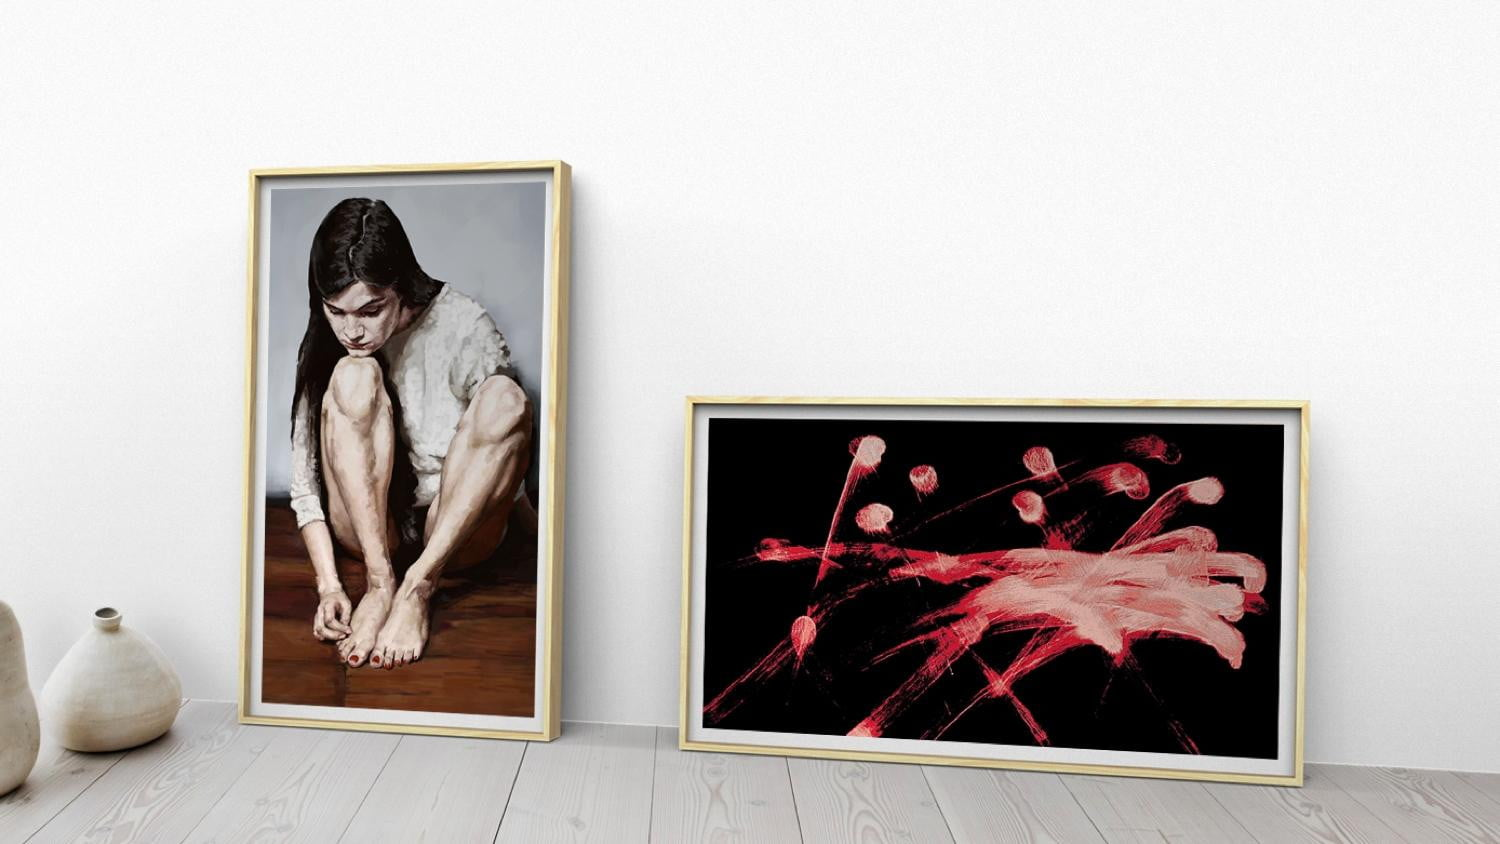 Depict Frame Turns Digital Art Into 4k Masterpieces Digital Trends